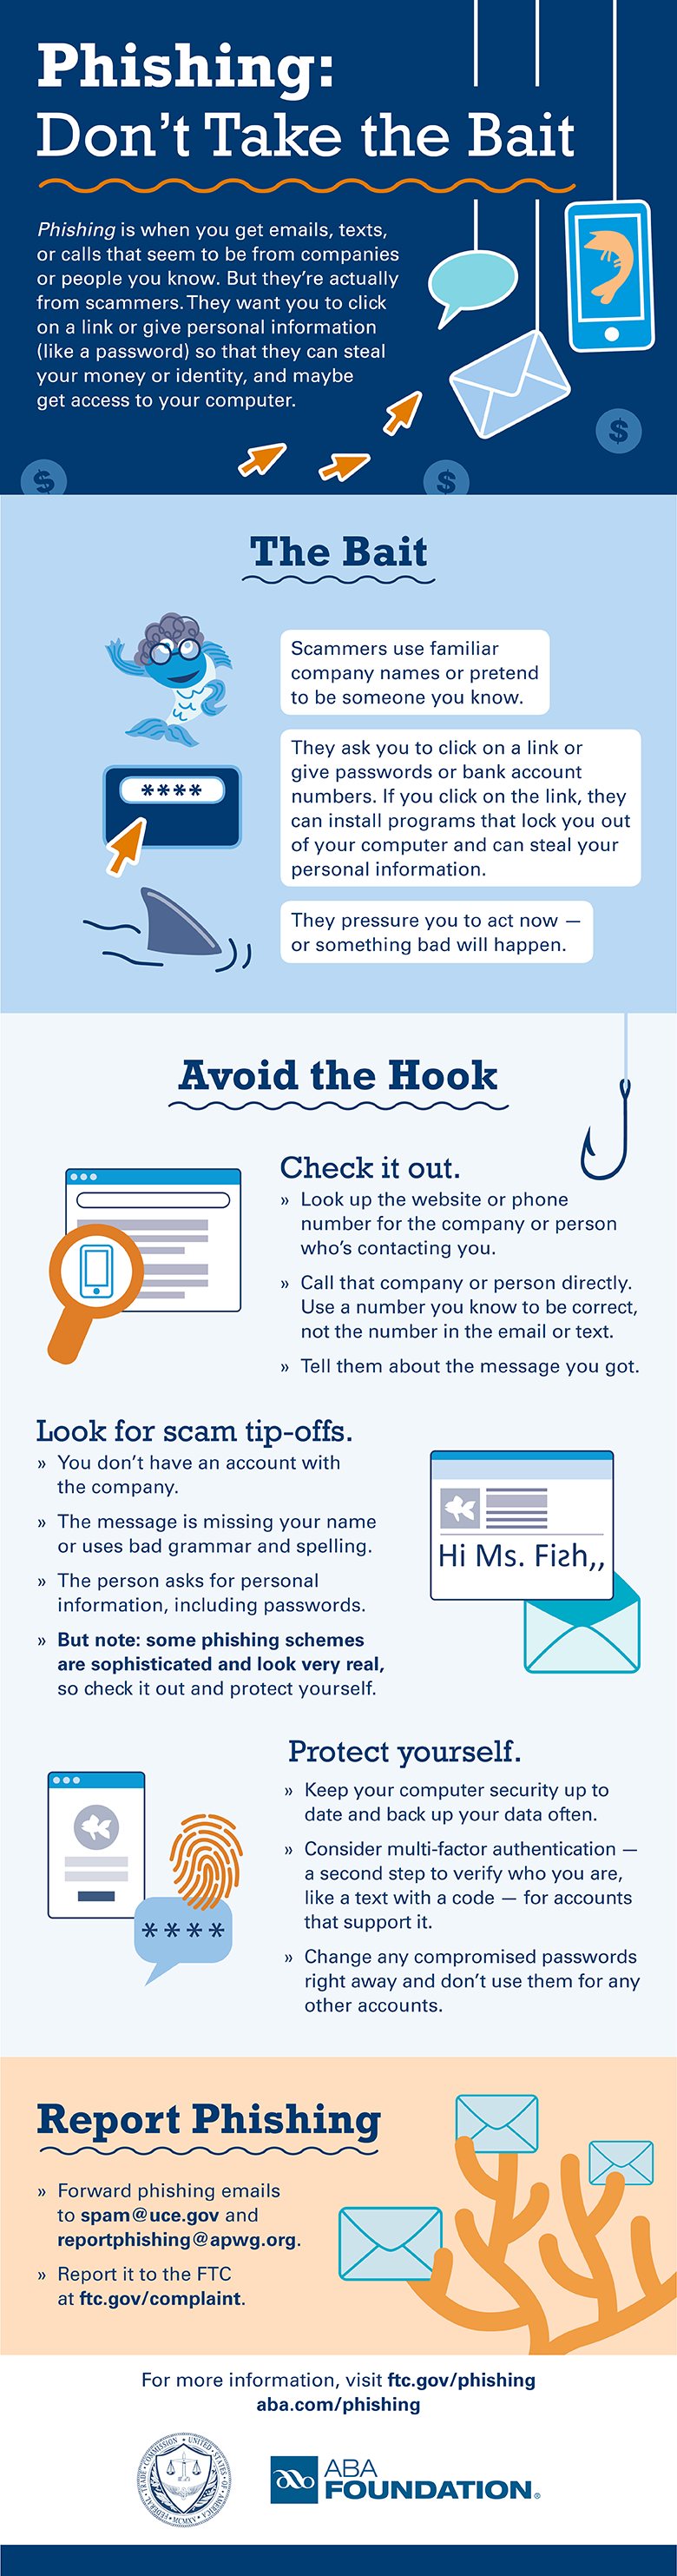 Prevent phishing: Follow these tips and prevent scammers from getting your personal info from texts, calls, or emails to steal your money or identity.